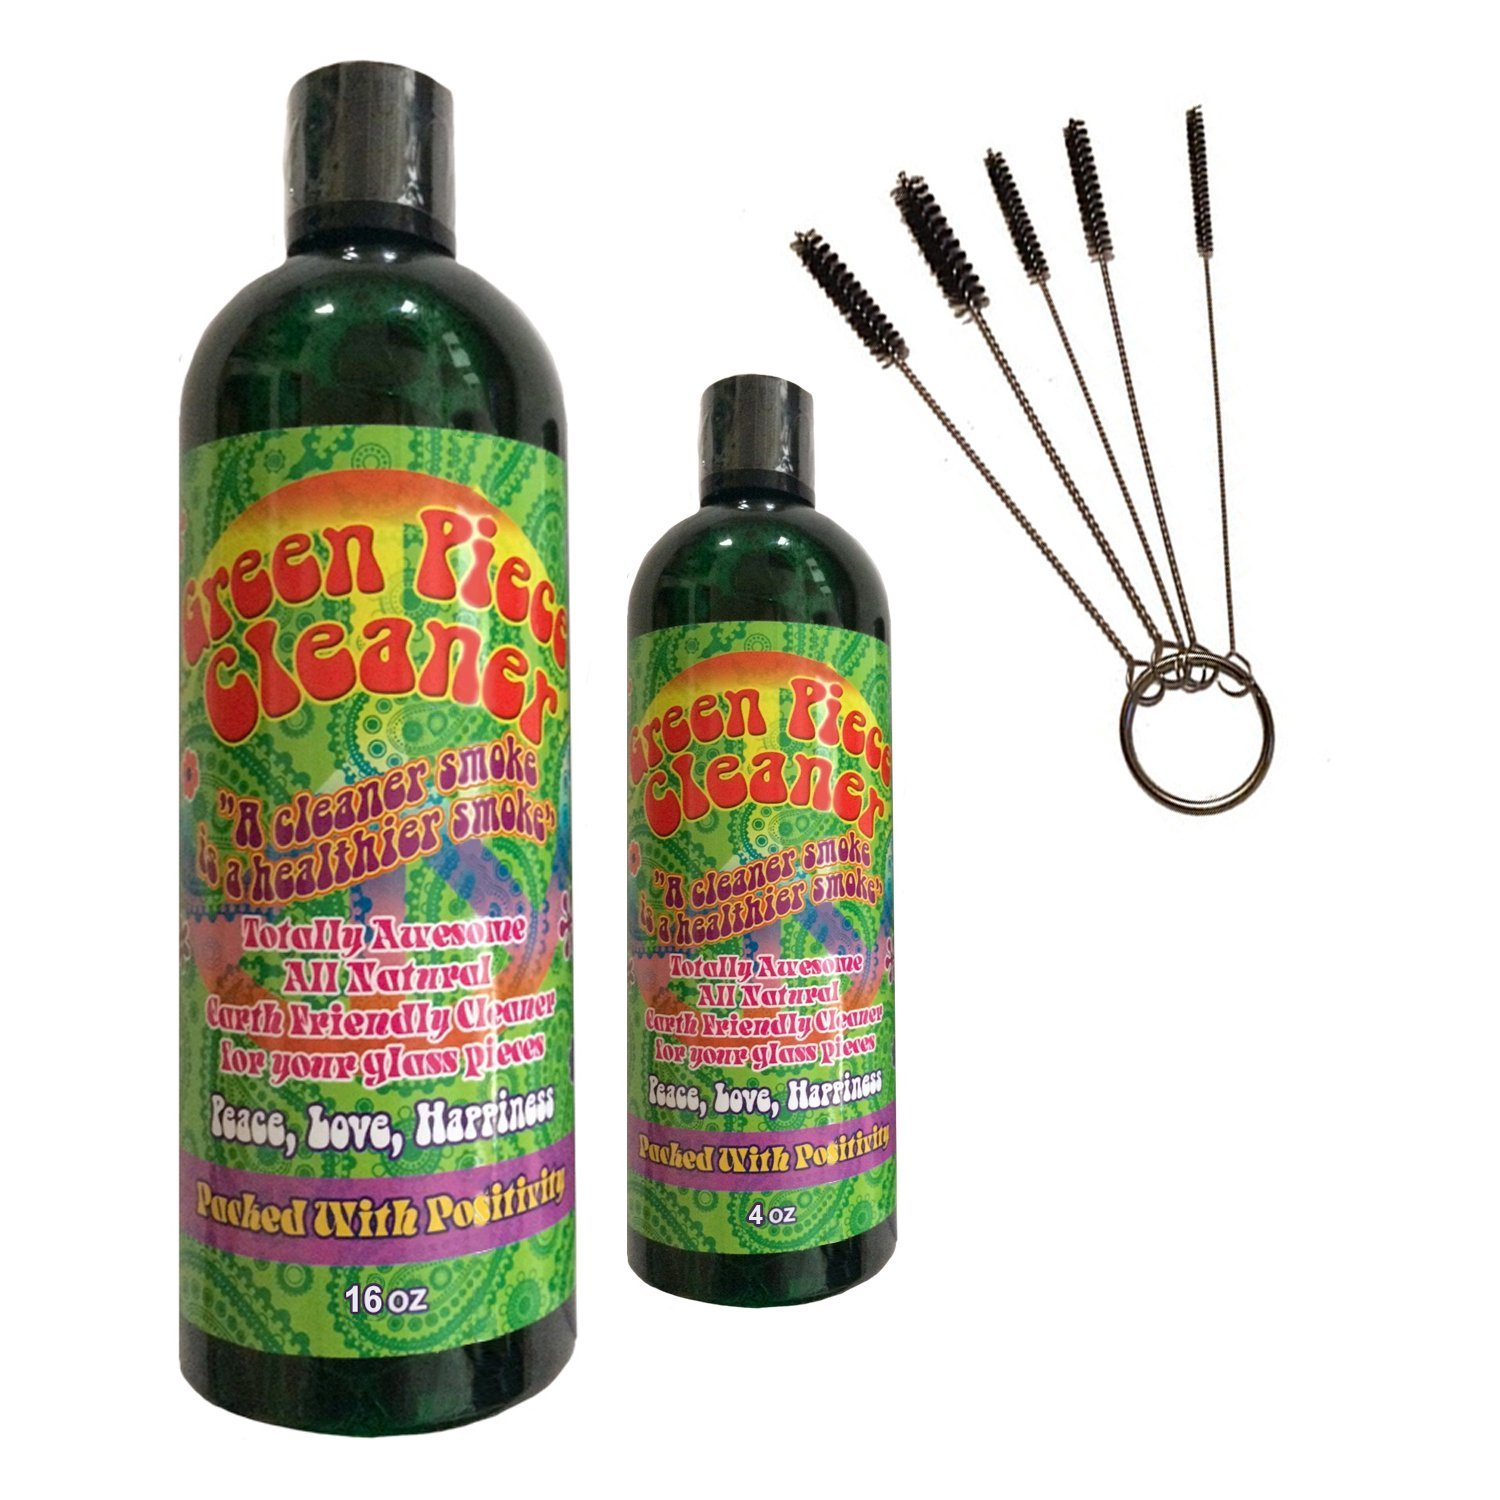 Green Piece Cleaner 16 oz - Free travel size - 4 Oz. and a Free Pipe Cleaner! The All Natural Glass Cleaner, Metal and Ceramic Water Pipe/Bong/Bubbler